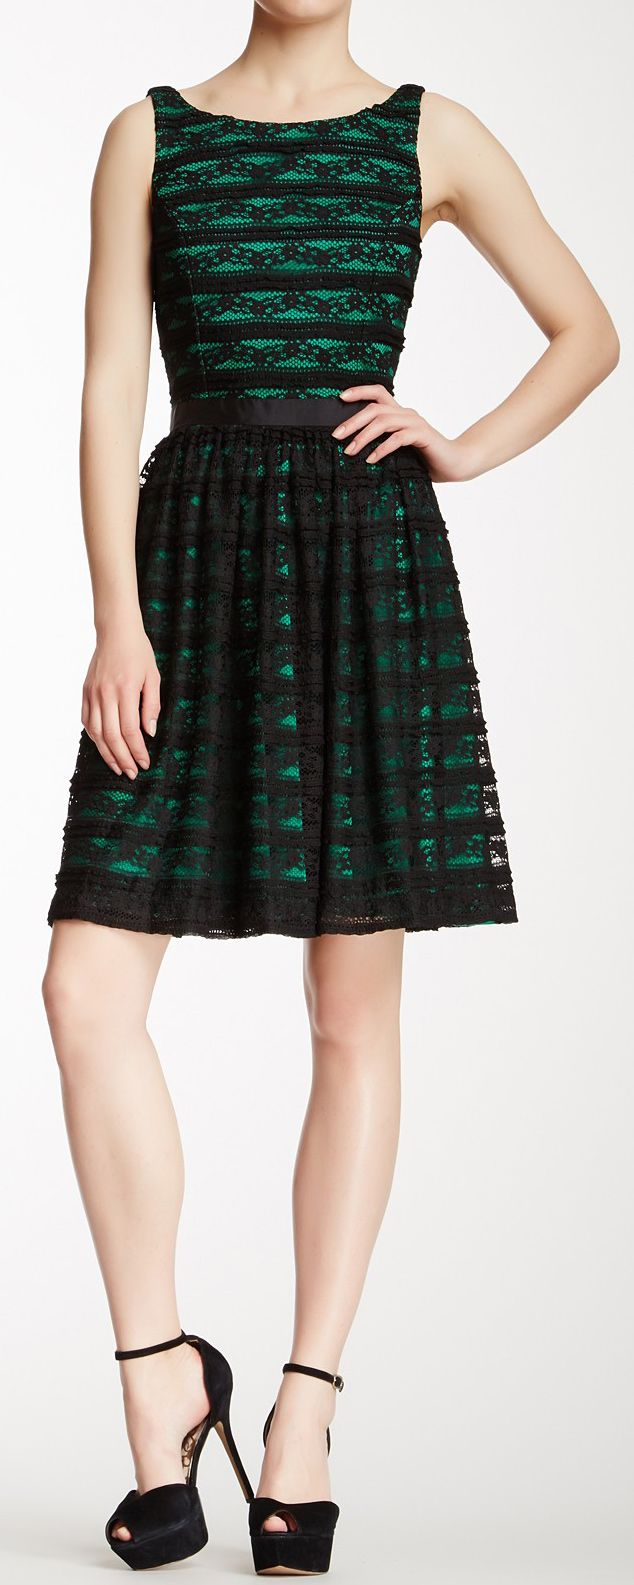 Green dress with lace overlay  Lace overlay dress  Close  Pinterest  Lace overlay dress Lace